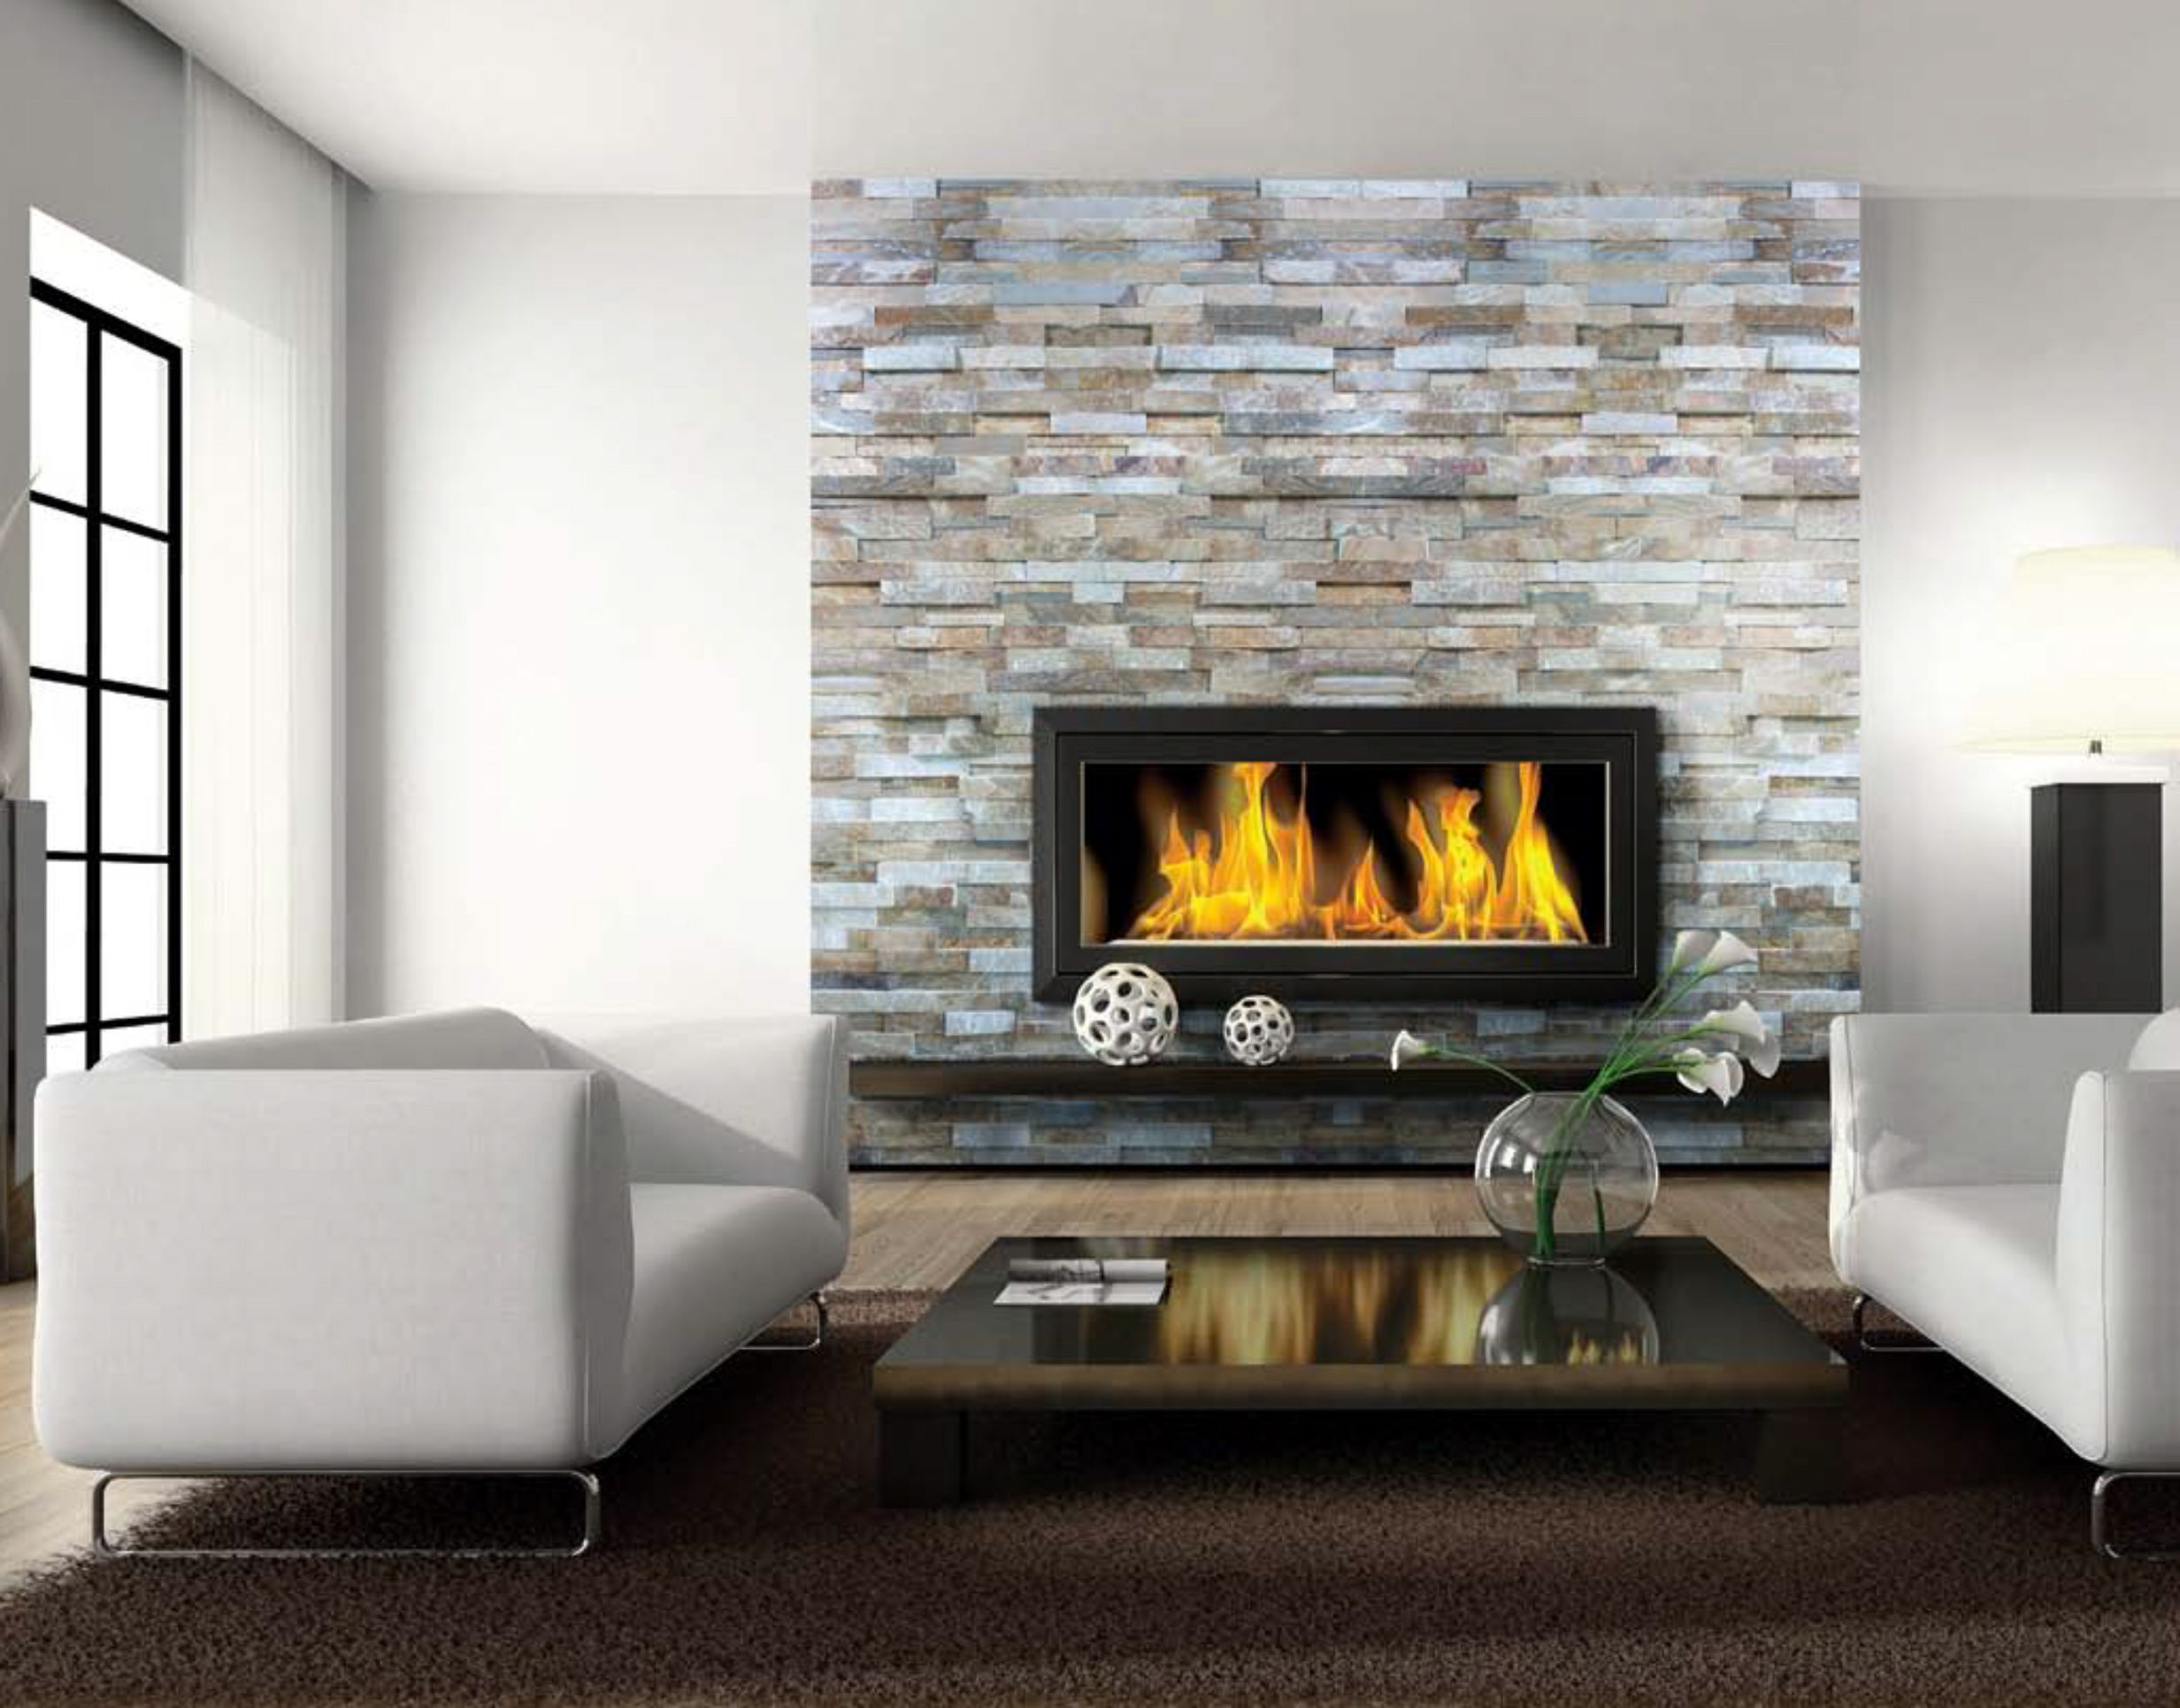 Arguably the most utilized area of a home during the holiday season fireplace ledgestonestacked stone slate contemporary wall and floor tile minneapolis by clint balfanz dailygadgetfo Image collections